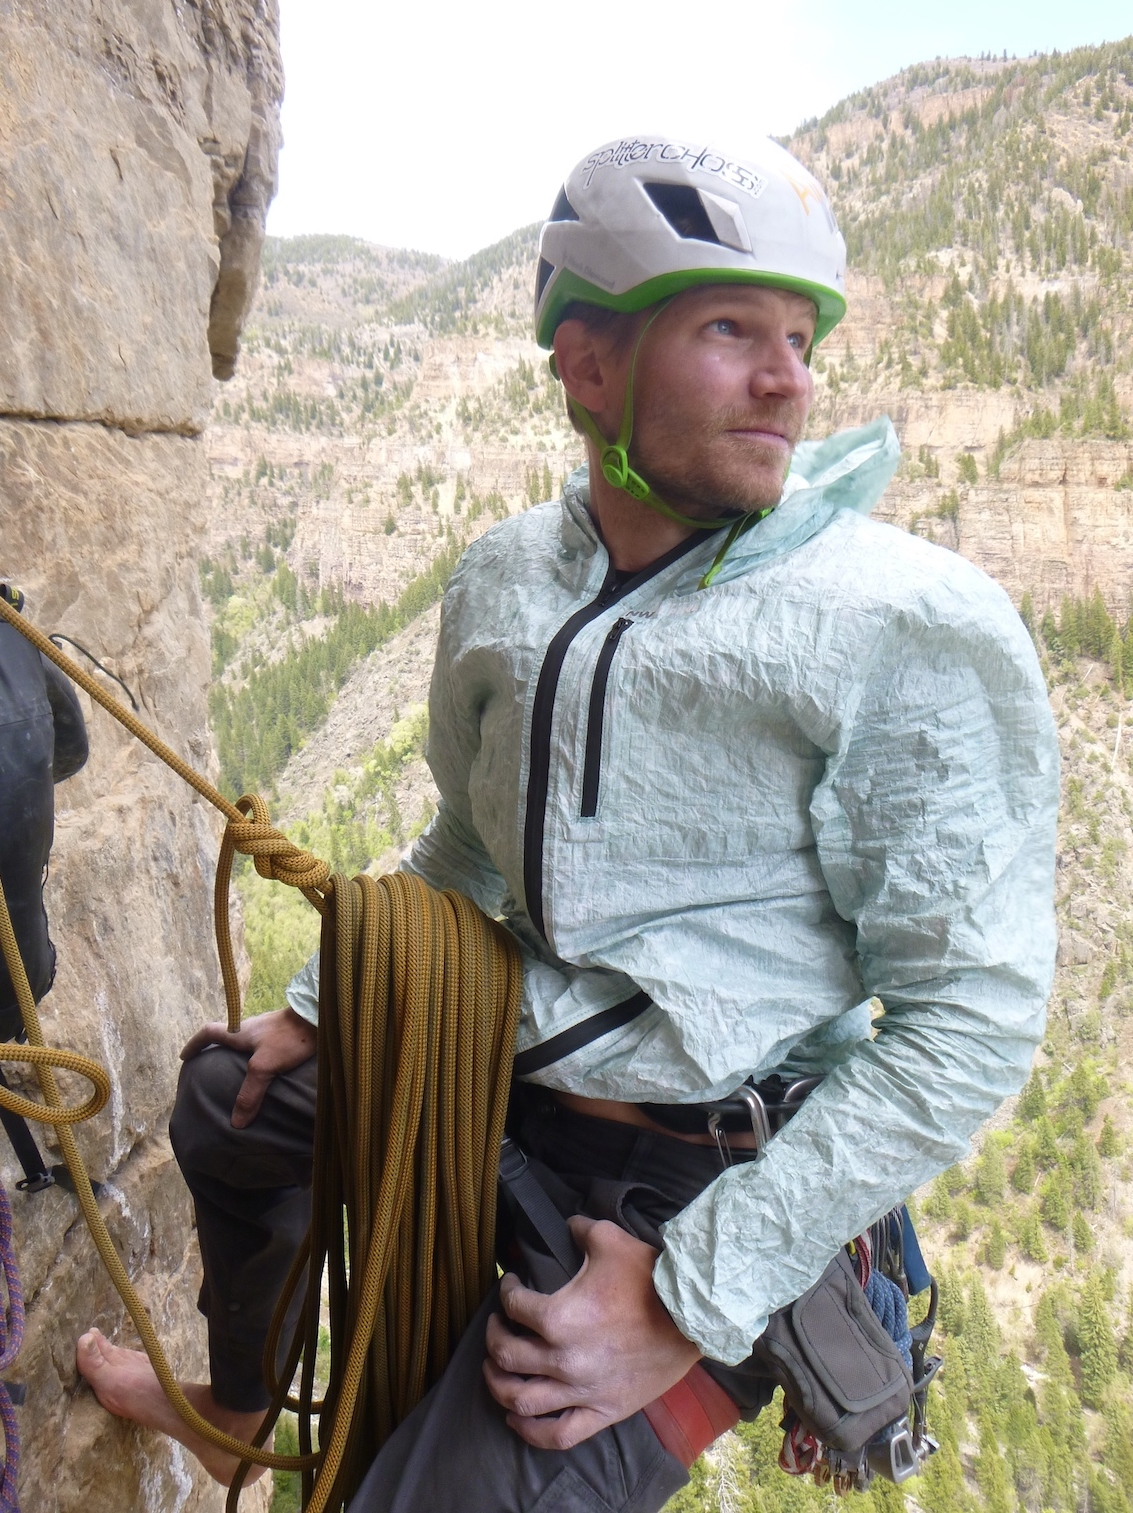 Derek Franz stays warm at a breezy belay with NW Alpine's Eyebright jacket atop Pitch 4 of Horse and Pony Show (III 5.11d) on the obscure Grizzly Creek Wall in Glenwood Canyon, Colorado. [Photo] Craig Helm